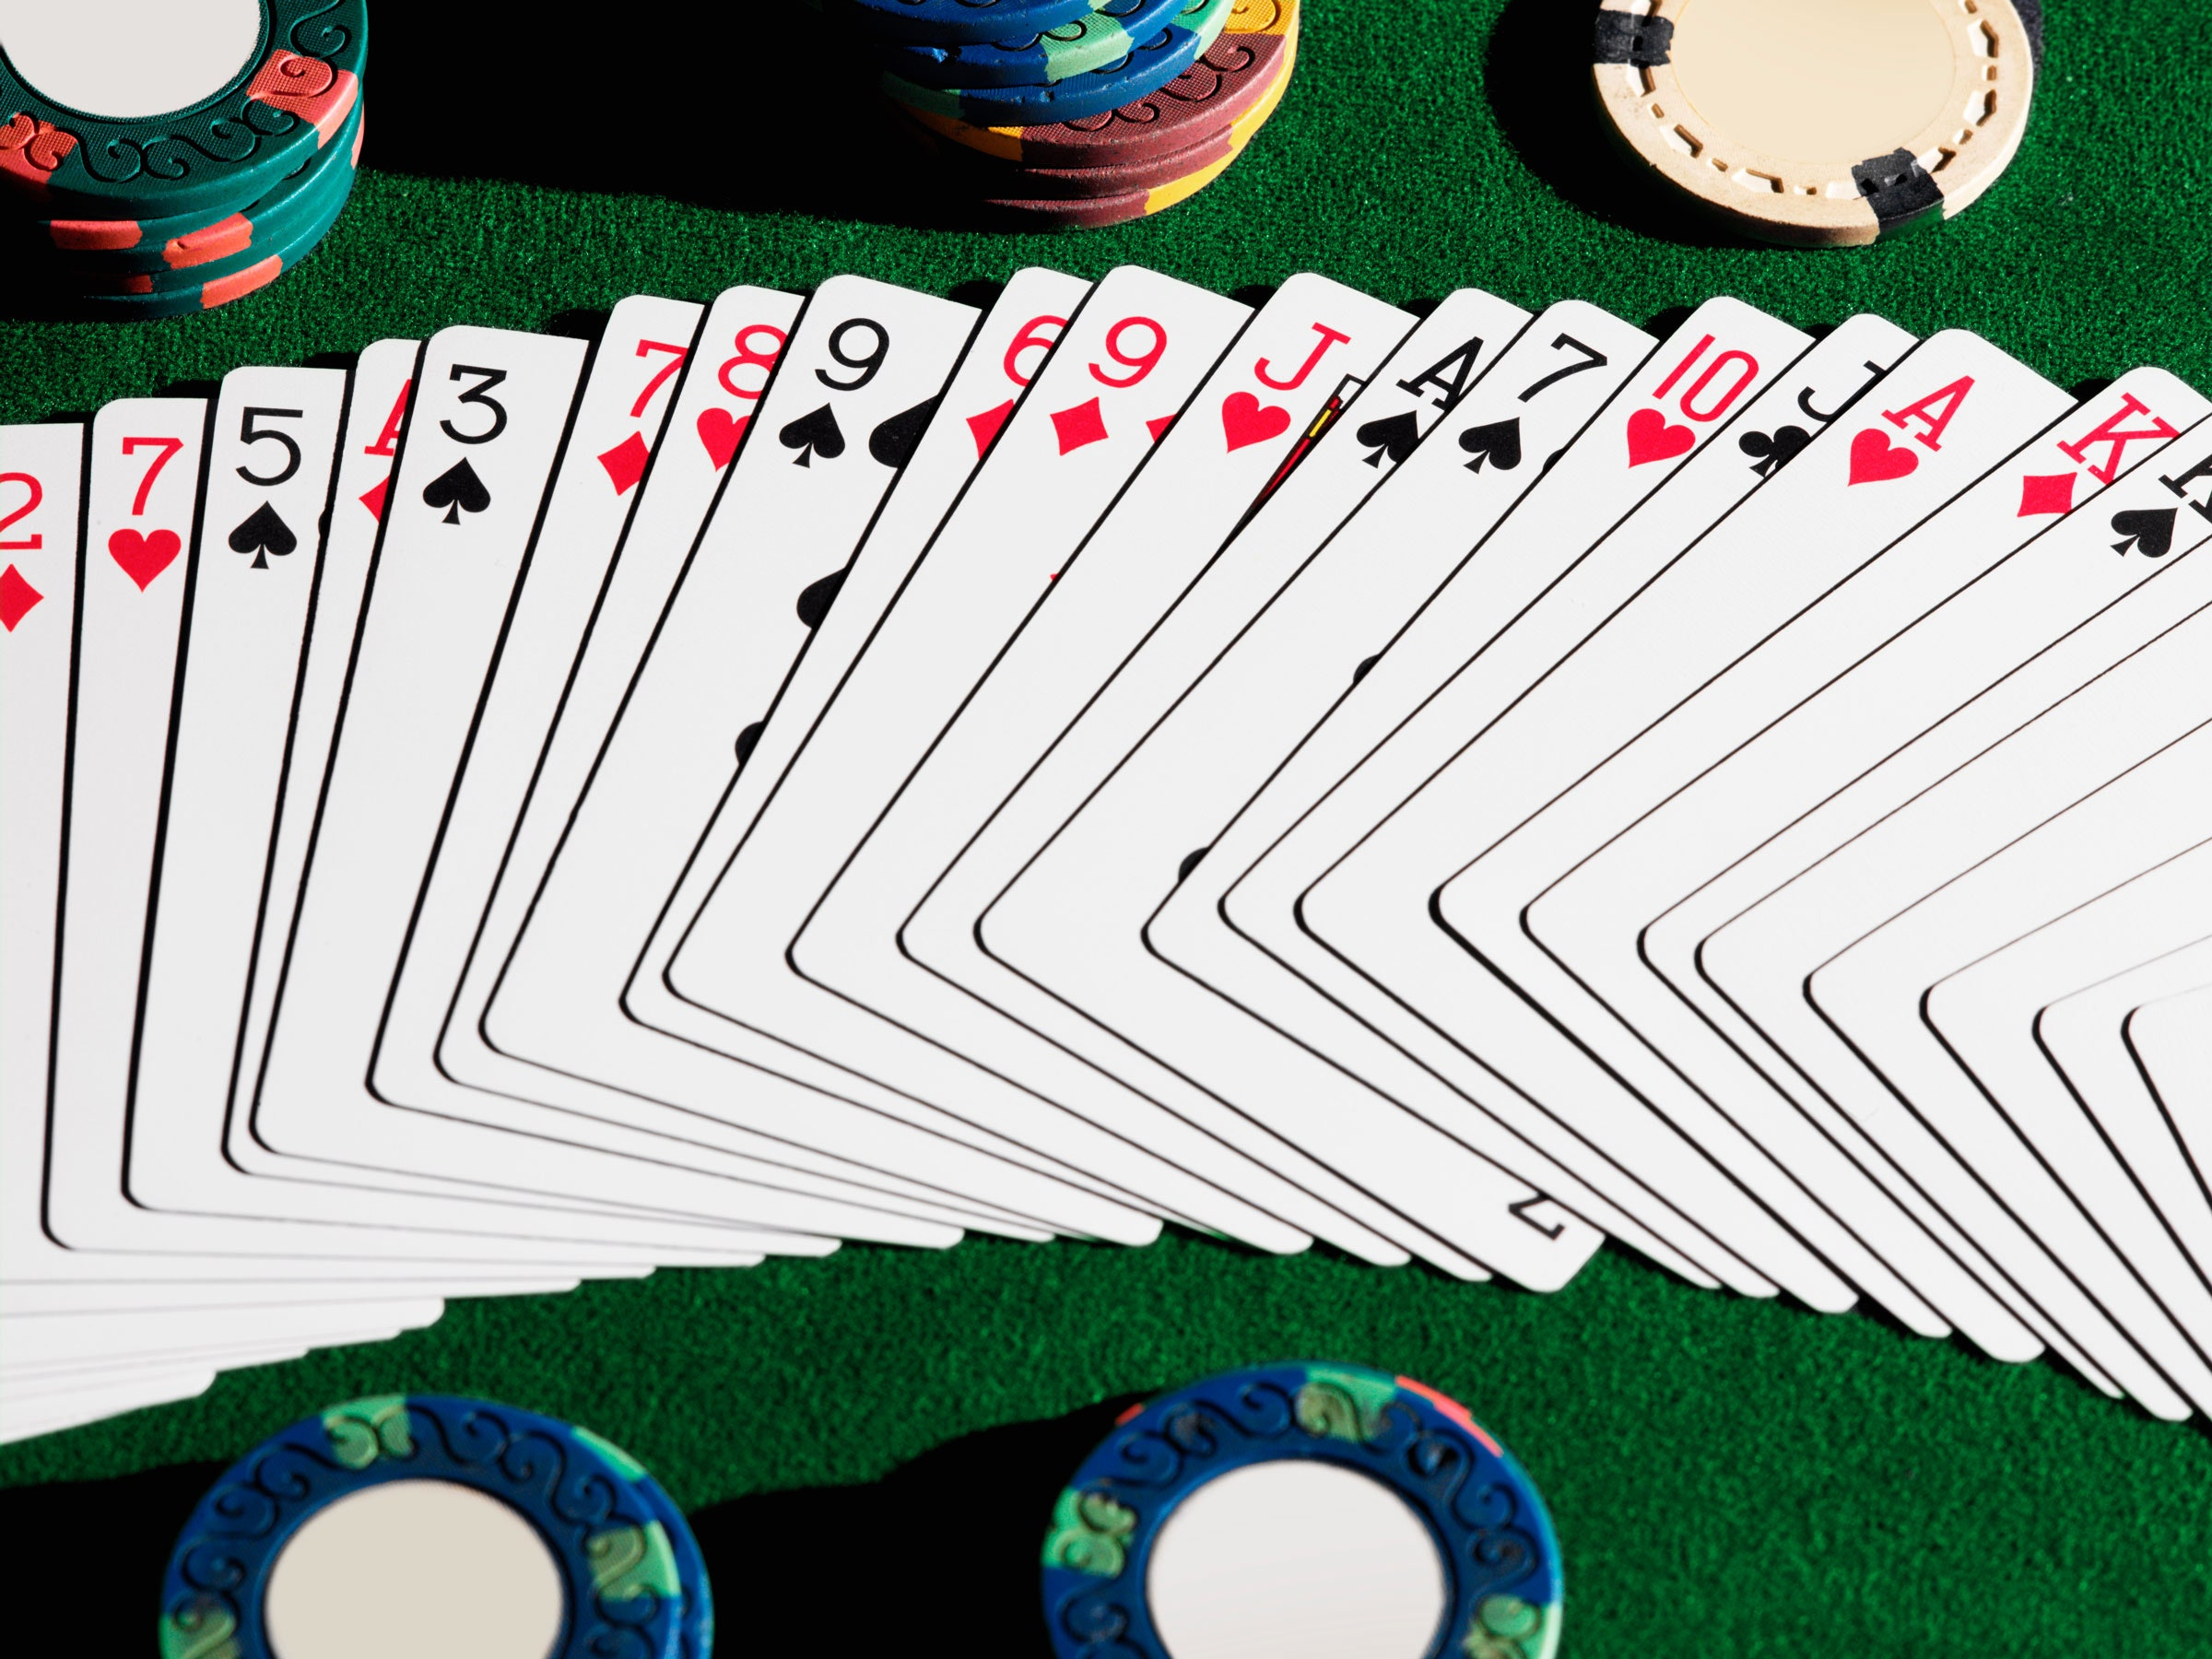 Learn more about agen poker online